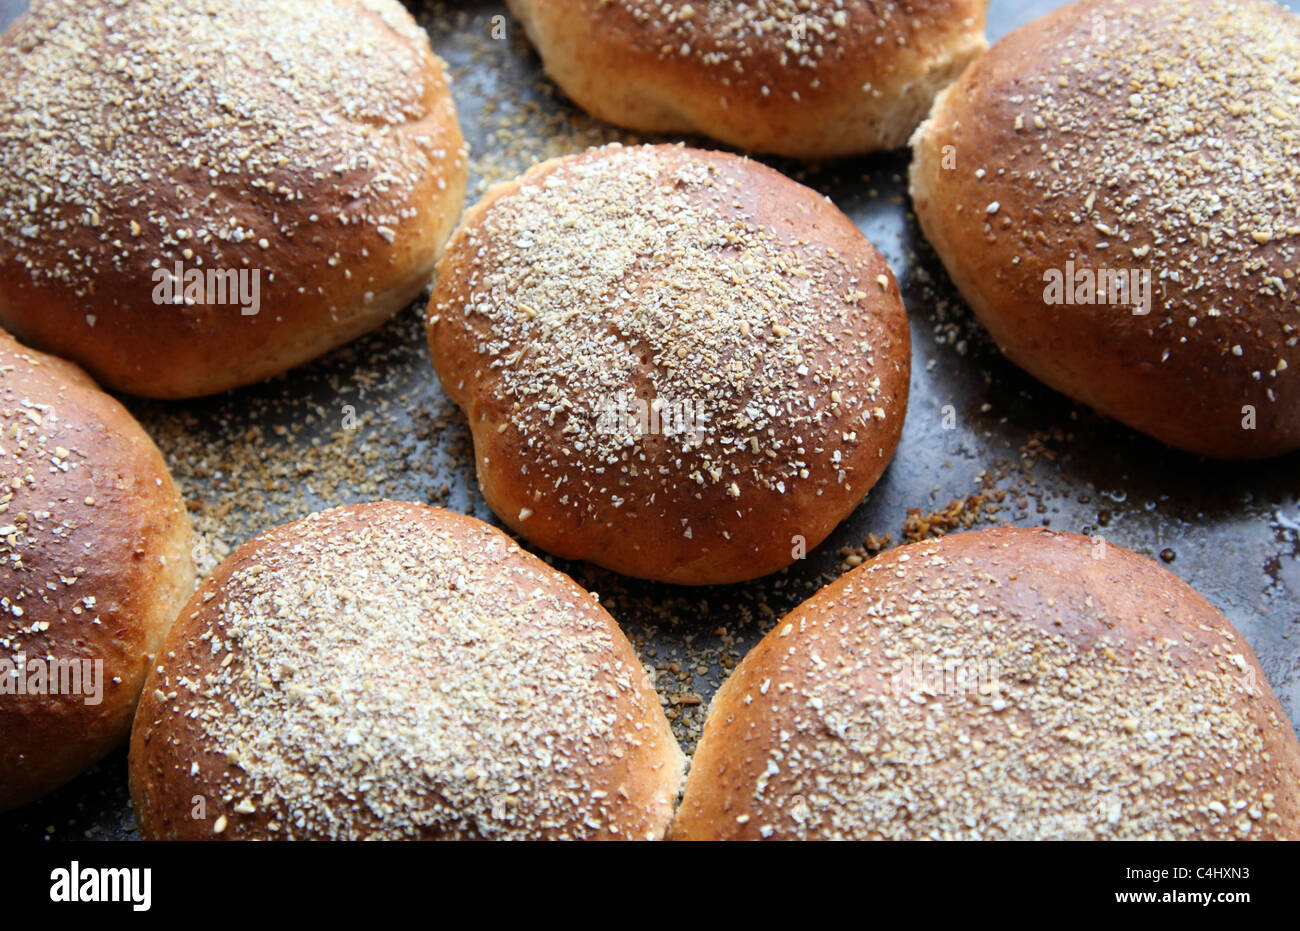 Freshly made wholemeal bread rolls on a baking tray just taken from the oven - Stock Image